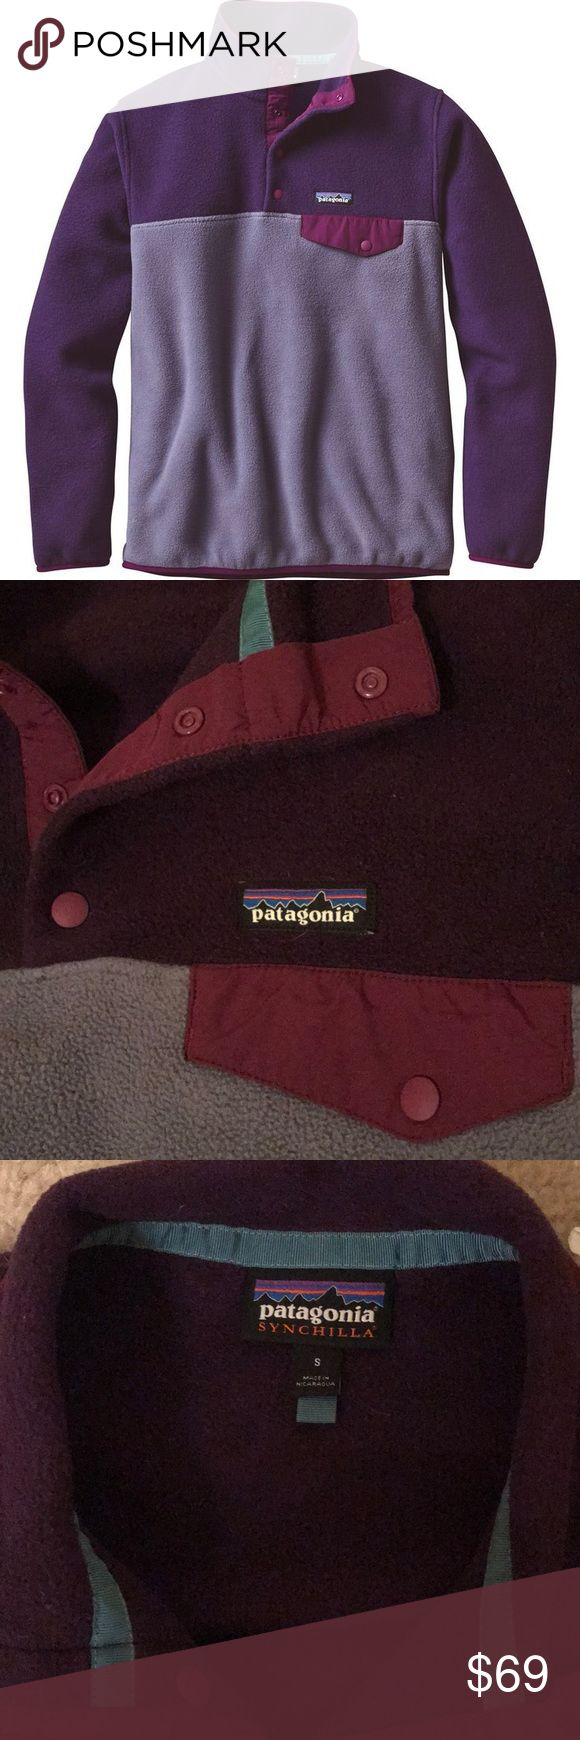 Purple Patagonia Synchilla Jacket Beautiful barely worn Patagonia jacket. I got so many compliments the few times I wore it, just selling for some extra cash. Patagonia Jackets & Coats